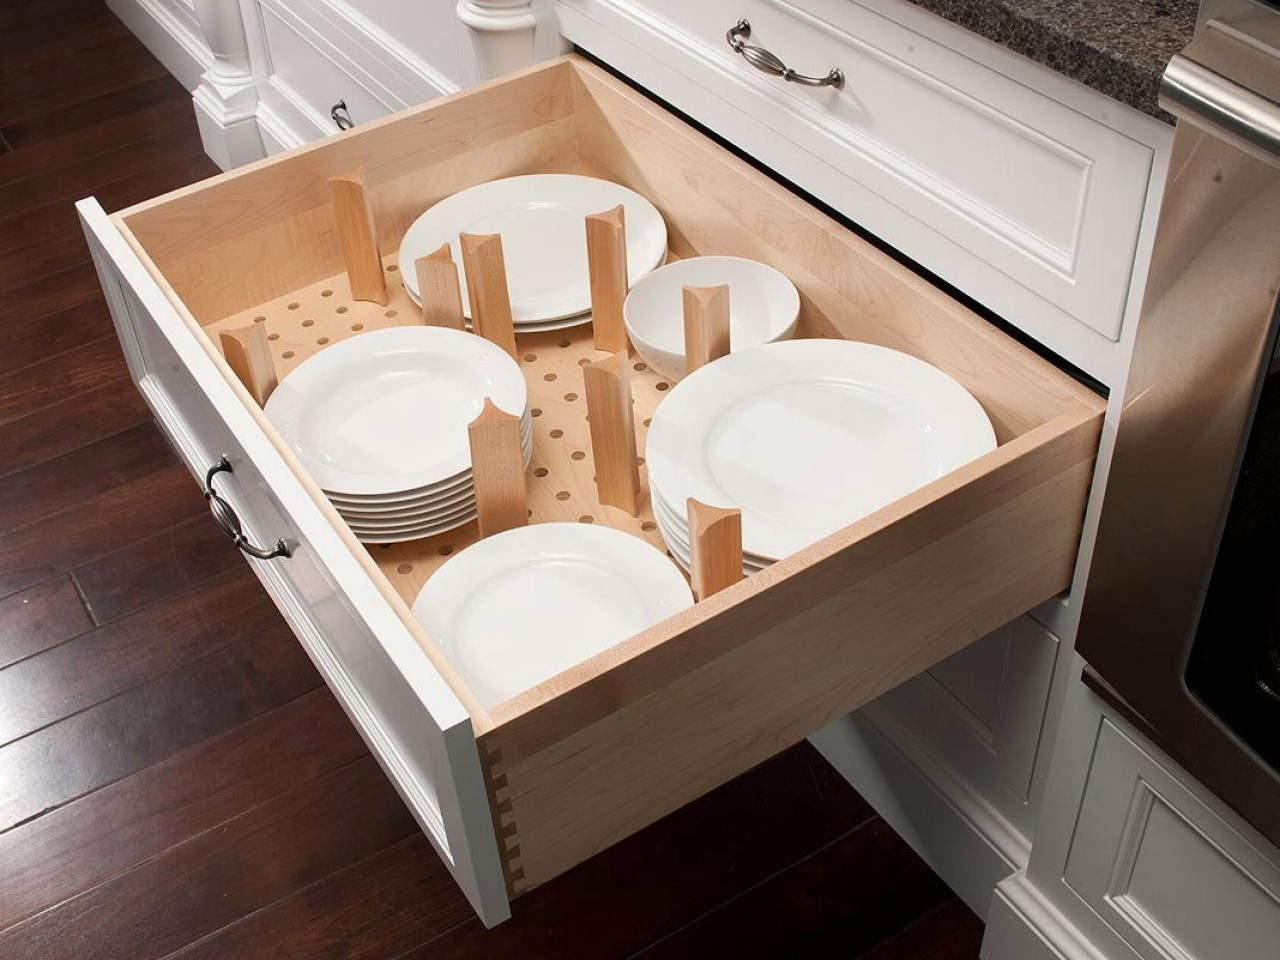 I am warming tot he idea of plates and blows on the drawer below. It & Kitchen Storage Ideas | Base cabinets Mullets and Clever